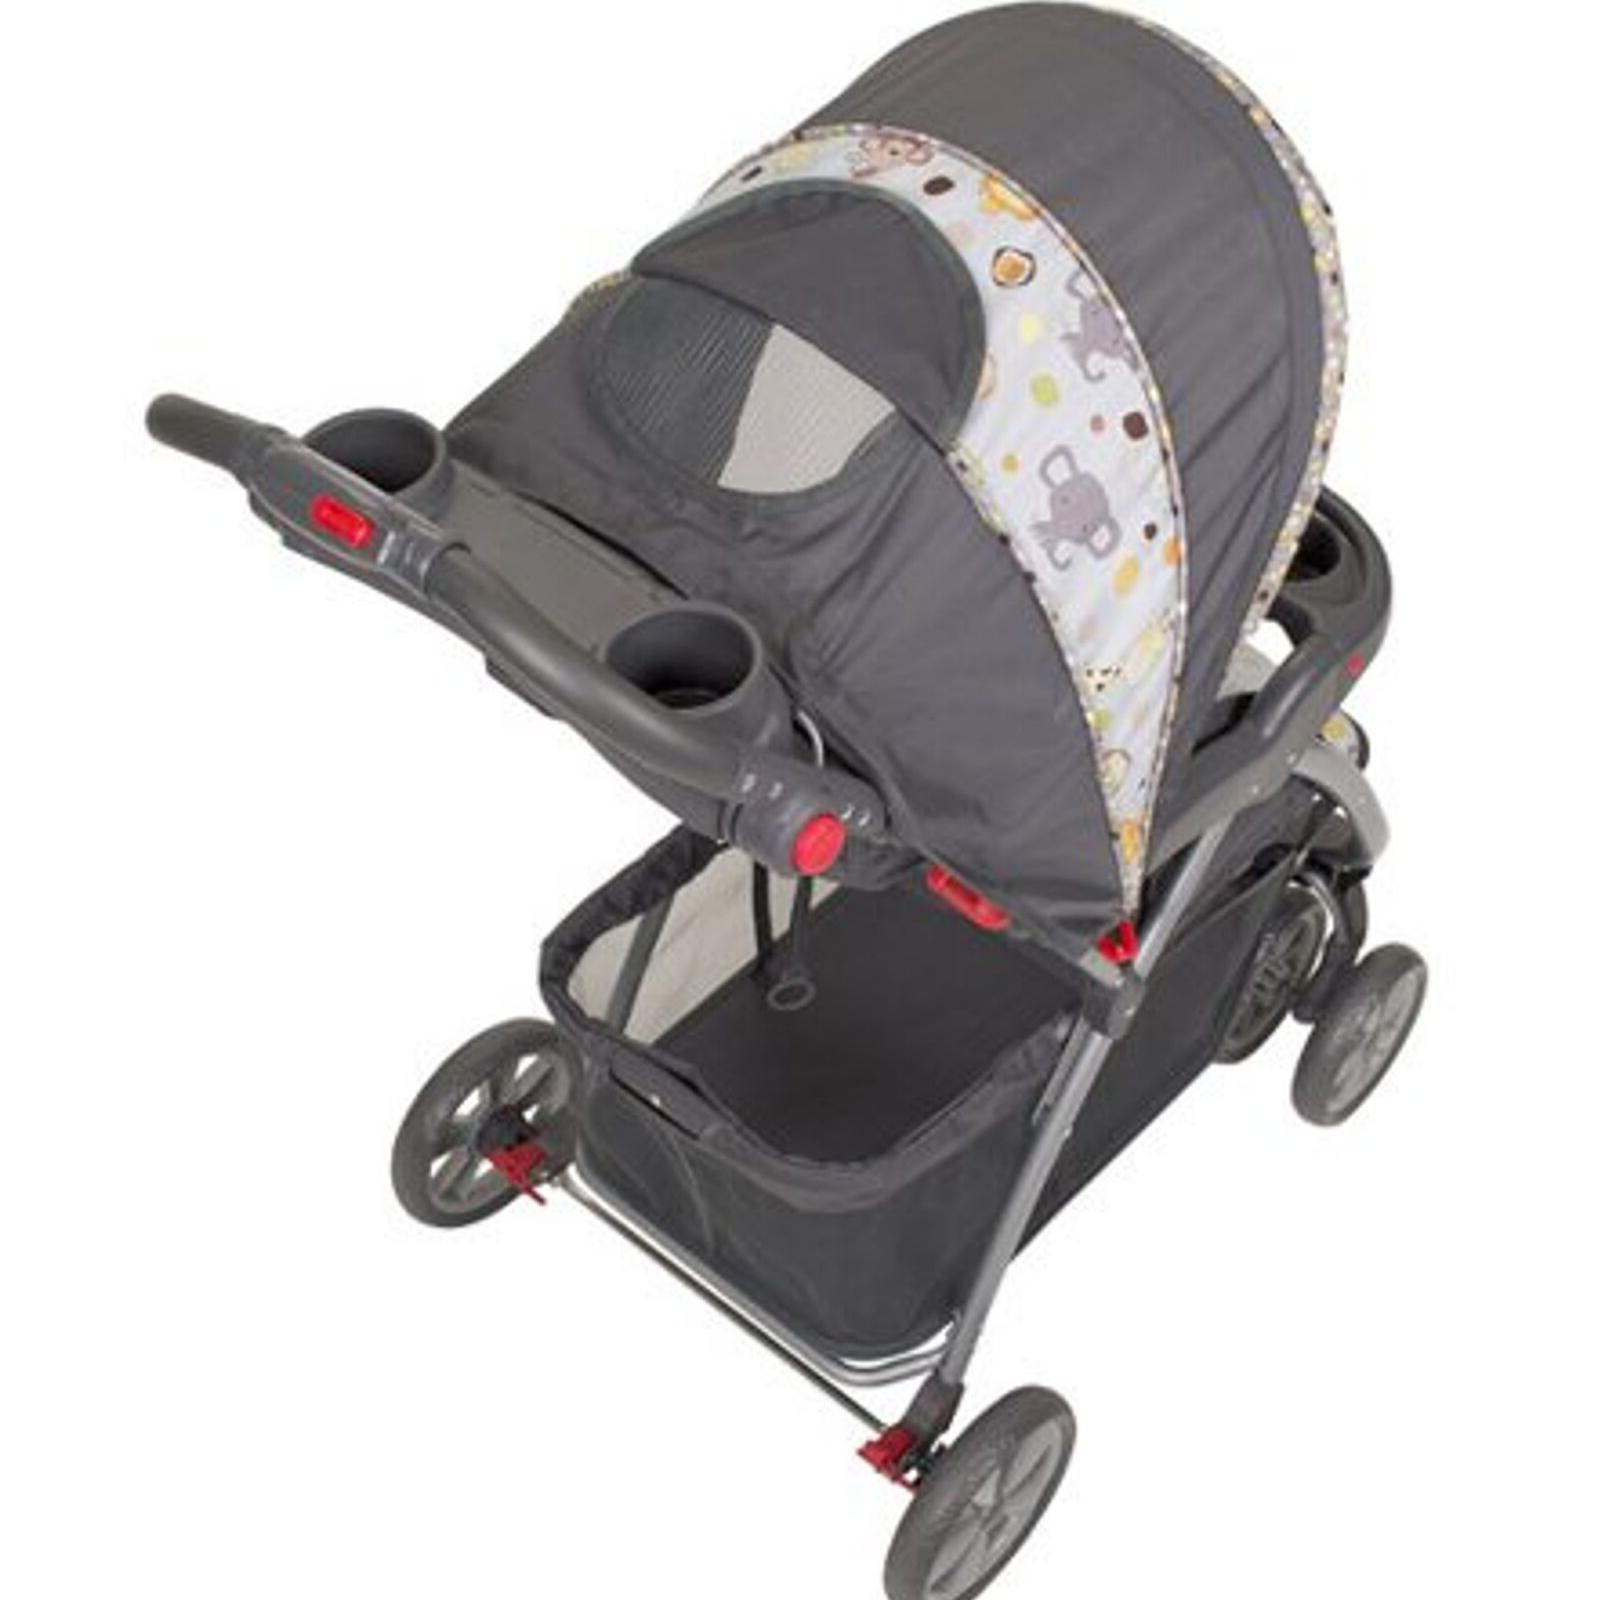 BABY TREND System Car Carriage Foldable